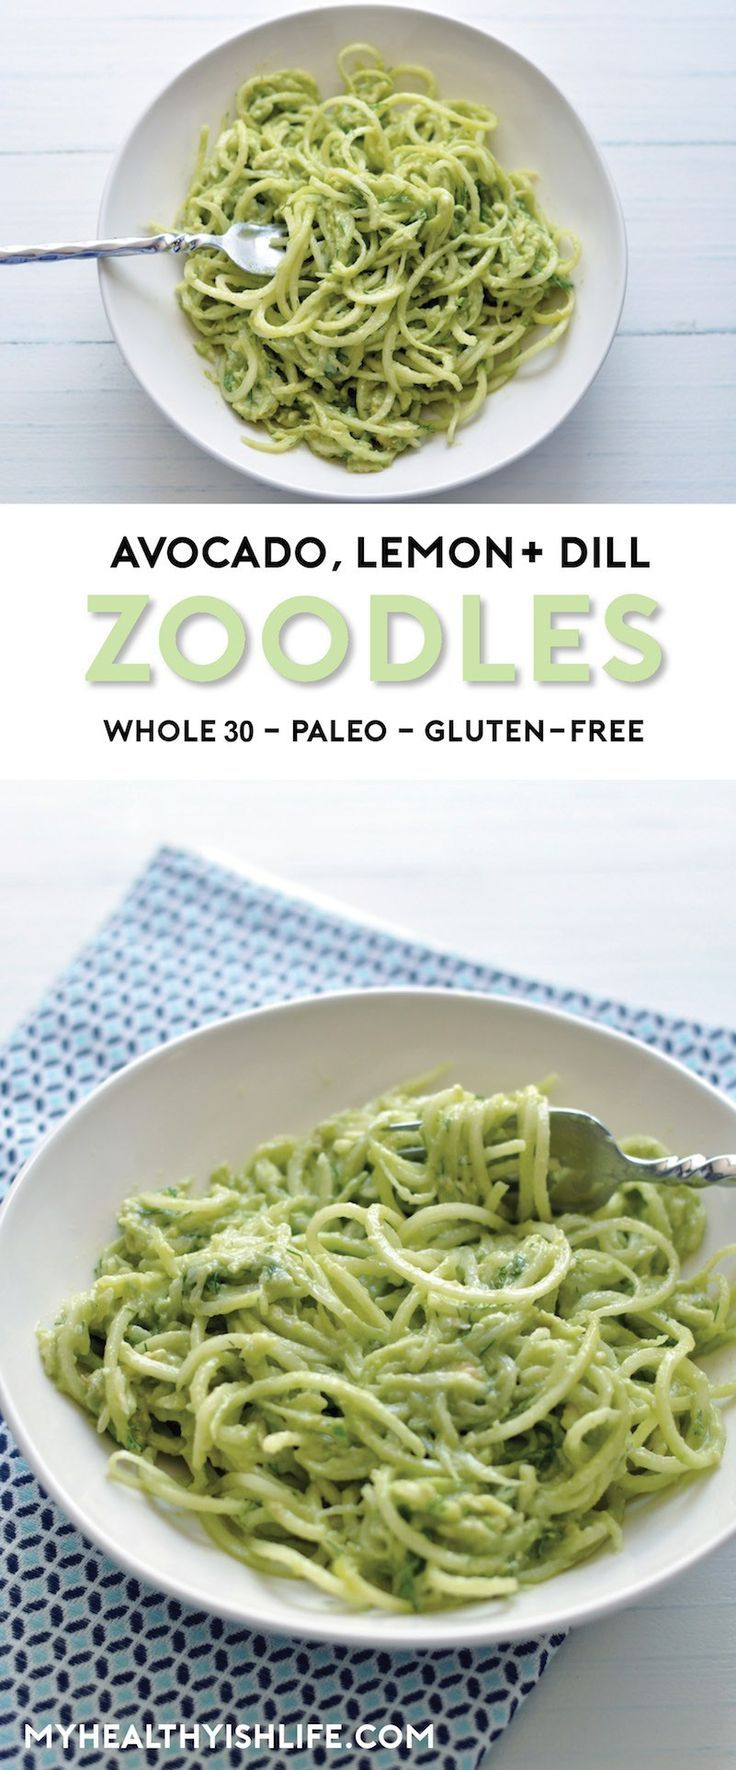 Light, bright and easy-to-make, these avocado, lemon and dill zoodles are the perfect summer side dish. Whole30-friendly, paleo, vegan, gluten-free and, most important, delicious!